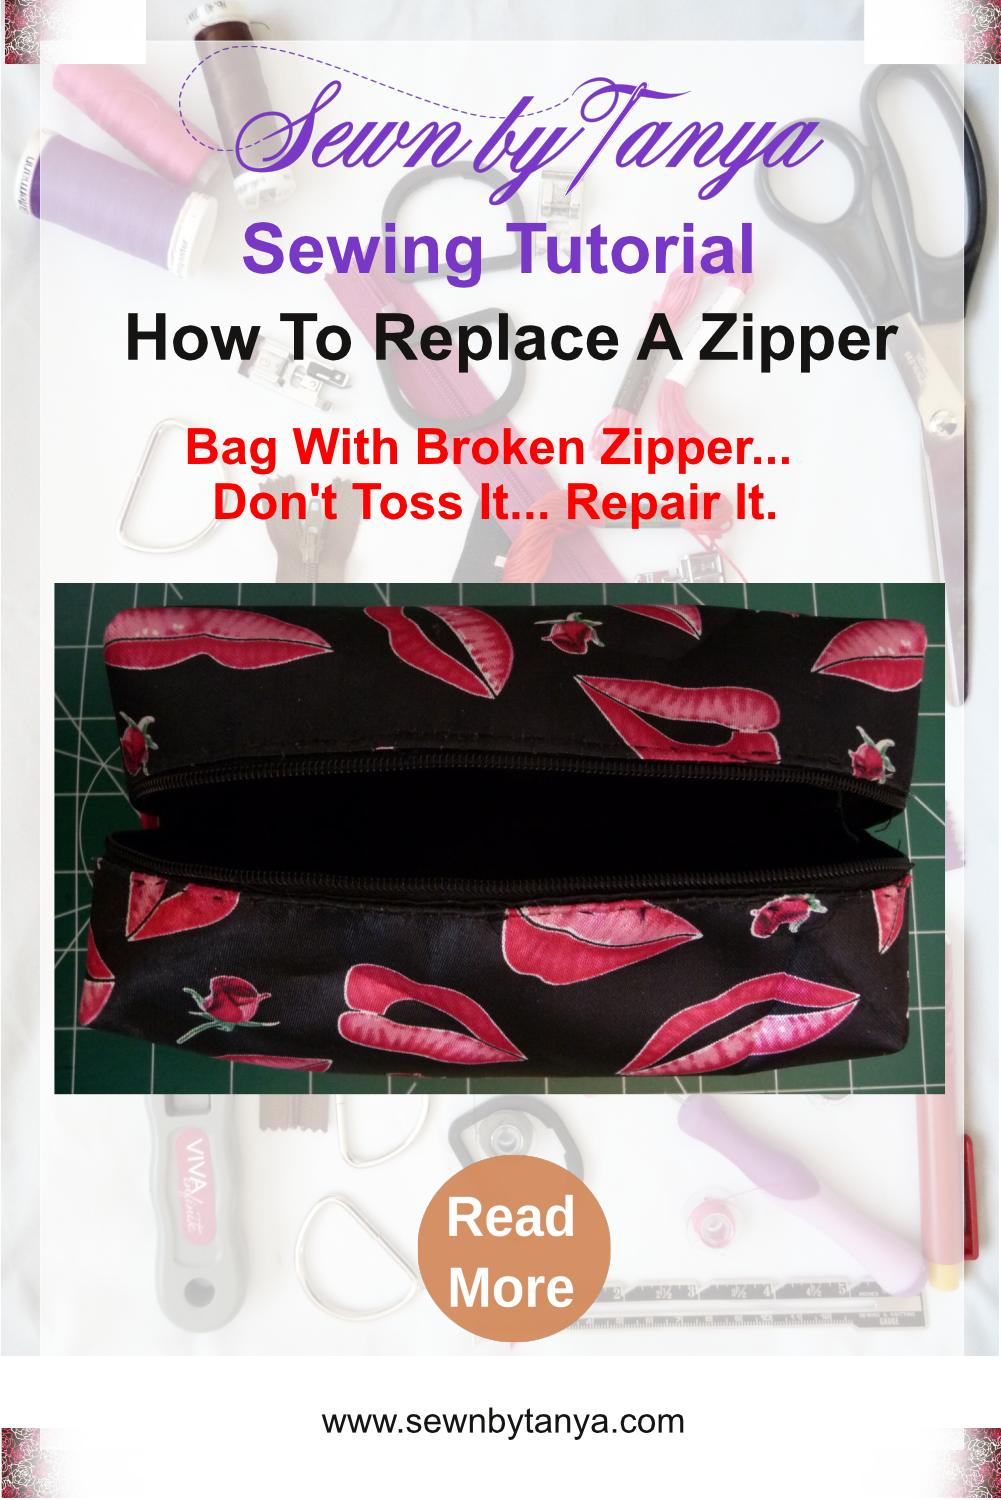 """Pinterst Image for """"Sewn By Tanya Sewing Tutorial: How To Replace A Zipper - Bag With A Broken Zipper... Don't Toss It.. Repair It"""" showing open black zippered pouch with pink lips pattern and black interior"""